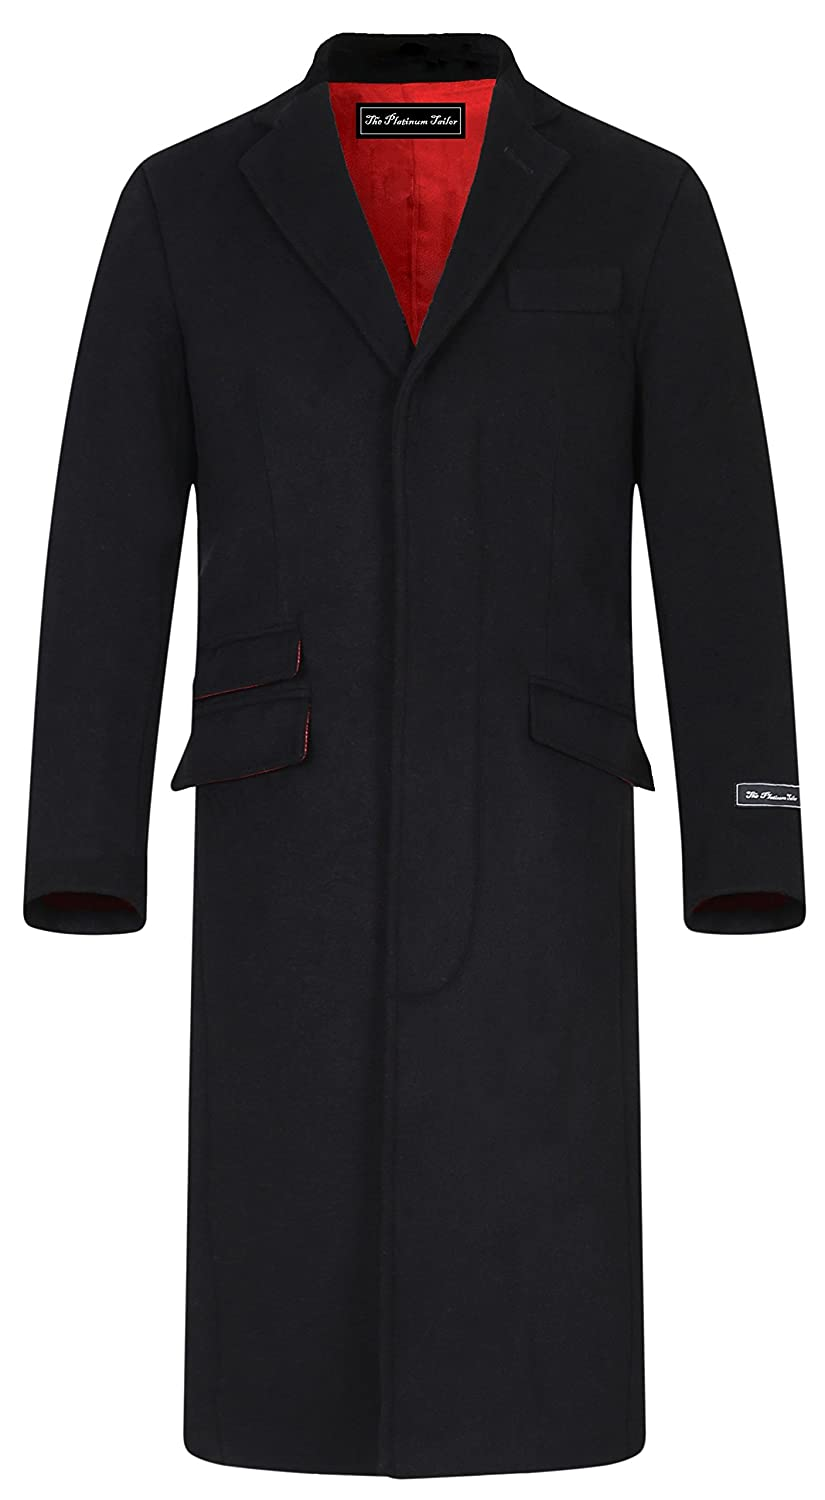 1920s Mens Coats & Jackets History  Overcoat Wool Velvet Collar & Red Satin Lining $207.72 AT vintagedancer.com